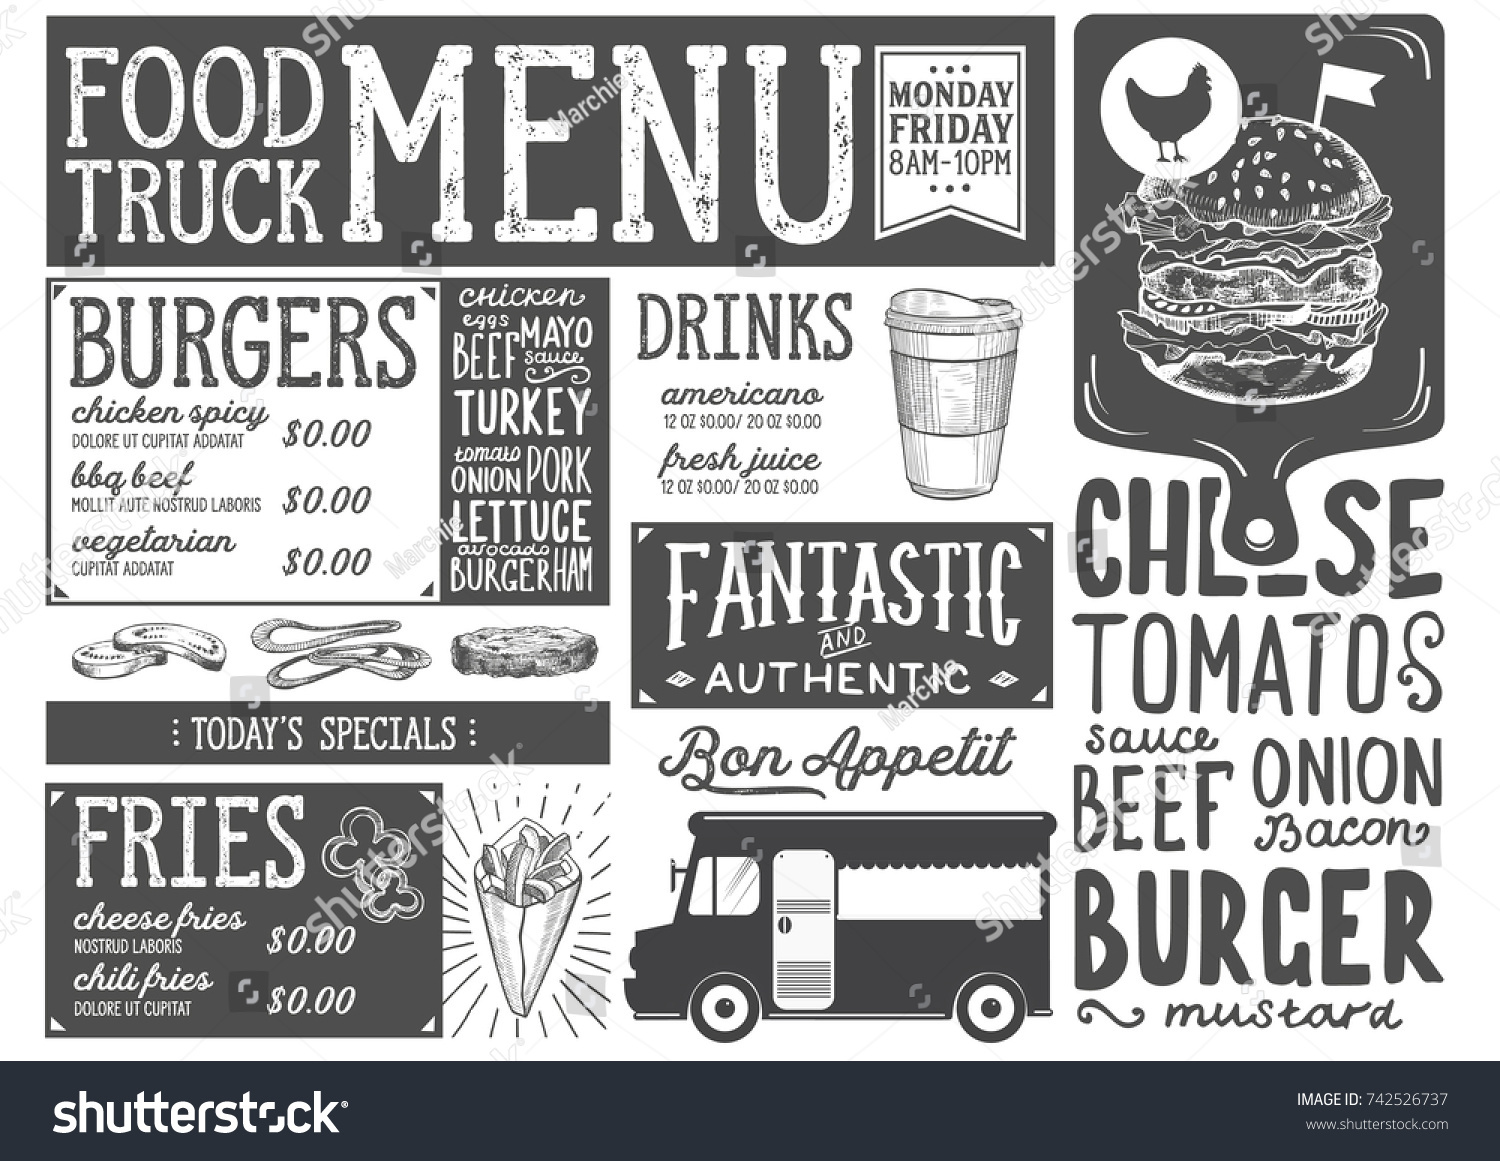 Food Truck Menu For Street Festival Design Template With Hand Drawn Graphic Illustrations